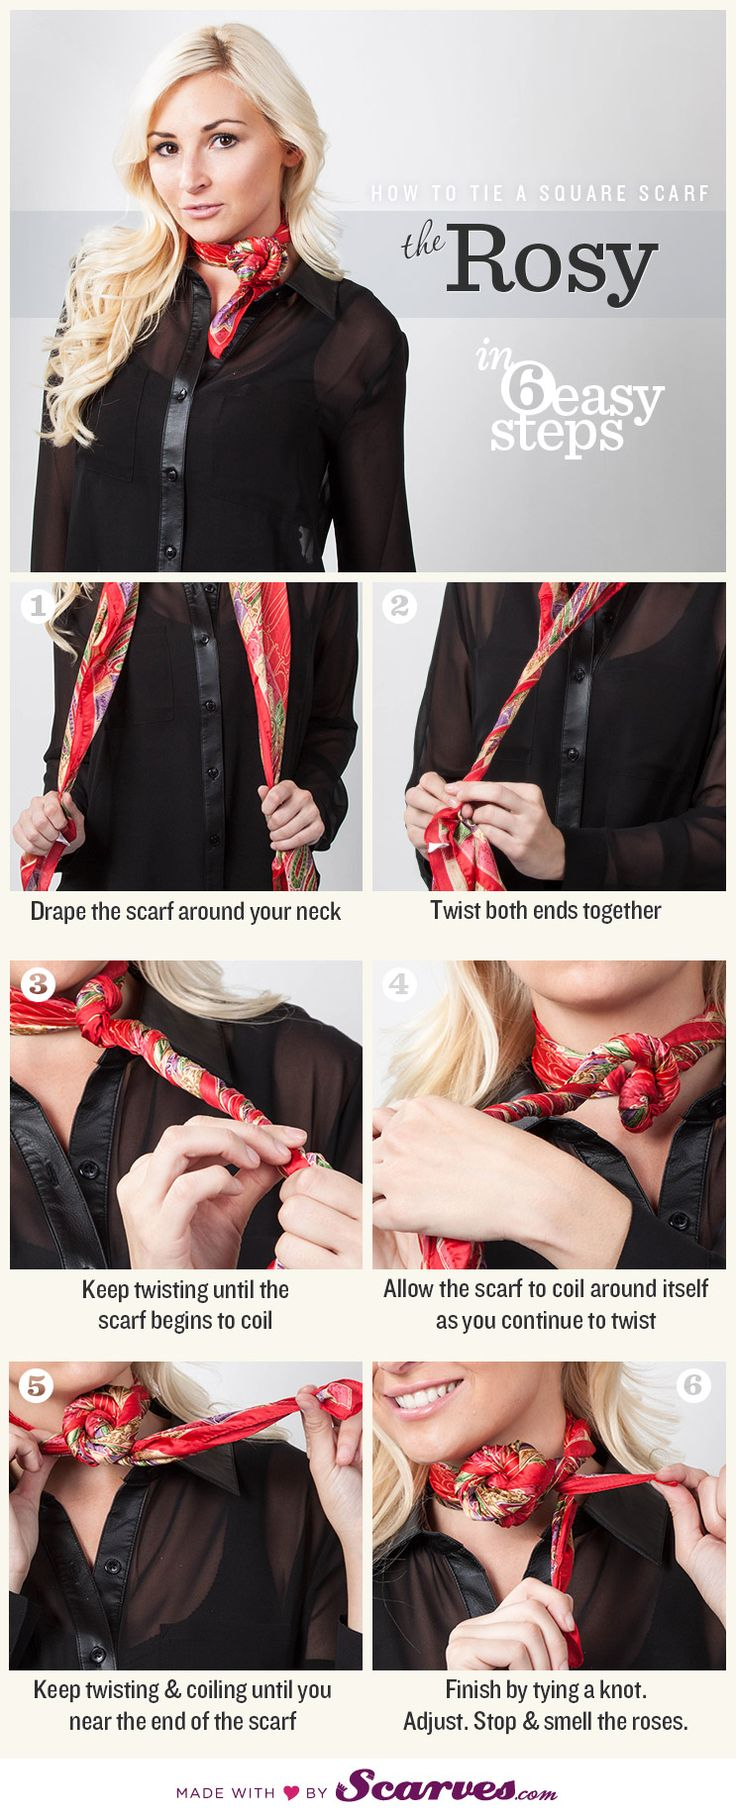 How To Tie a Square Scarf - The Rosy: